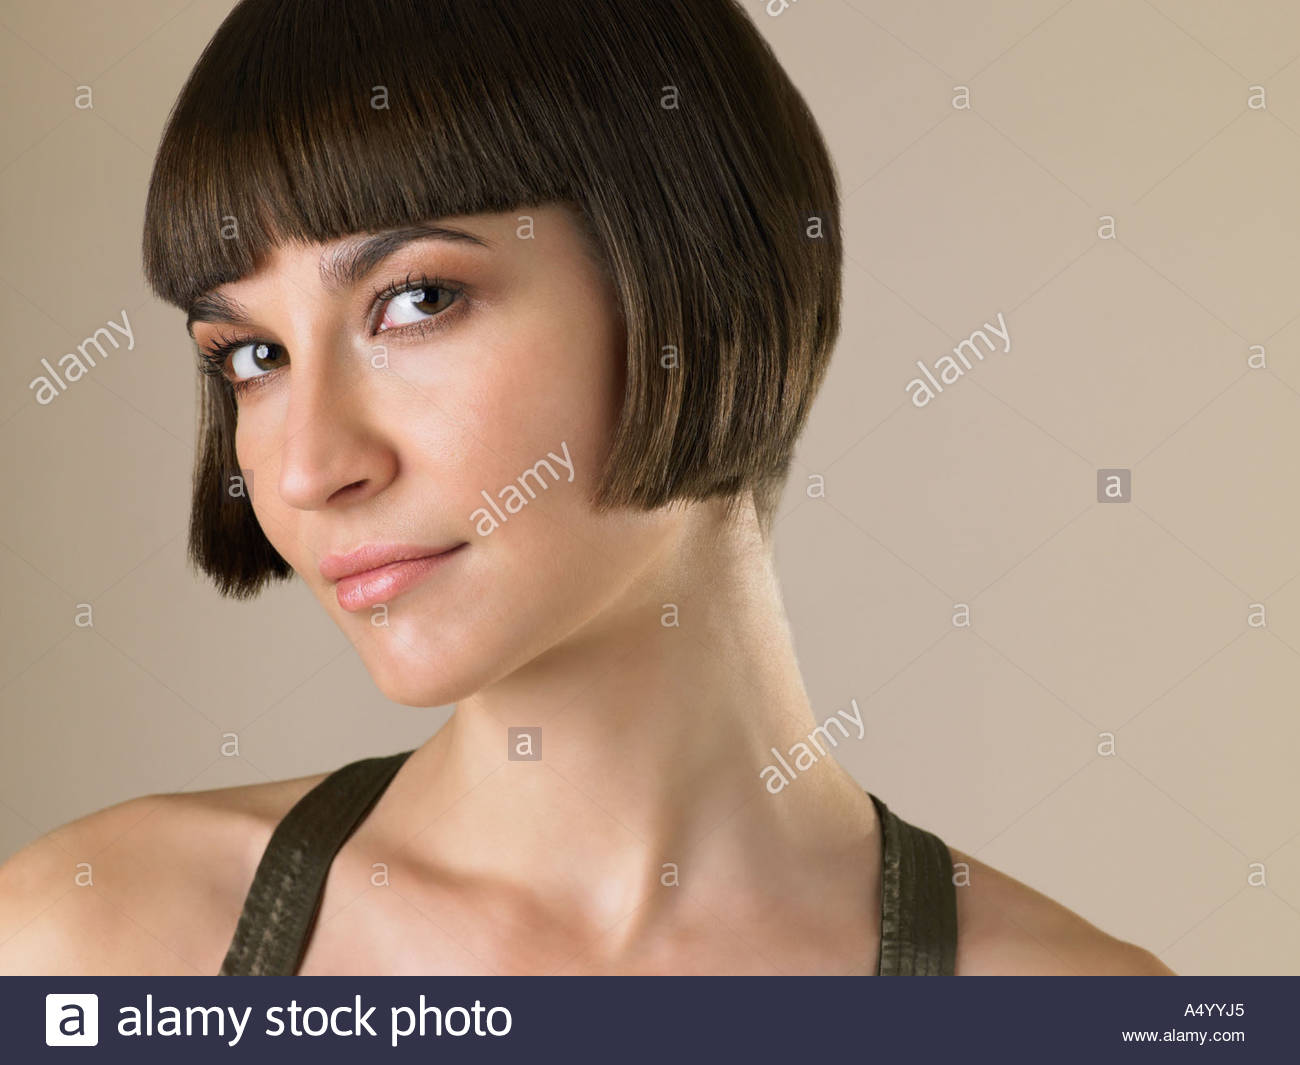 Woman with a bob hairstyle - Stock Image